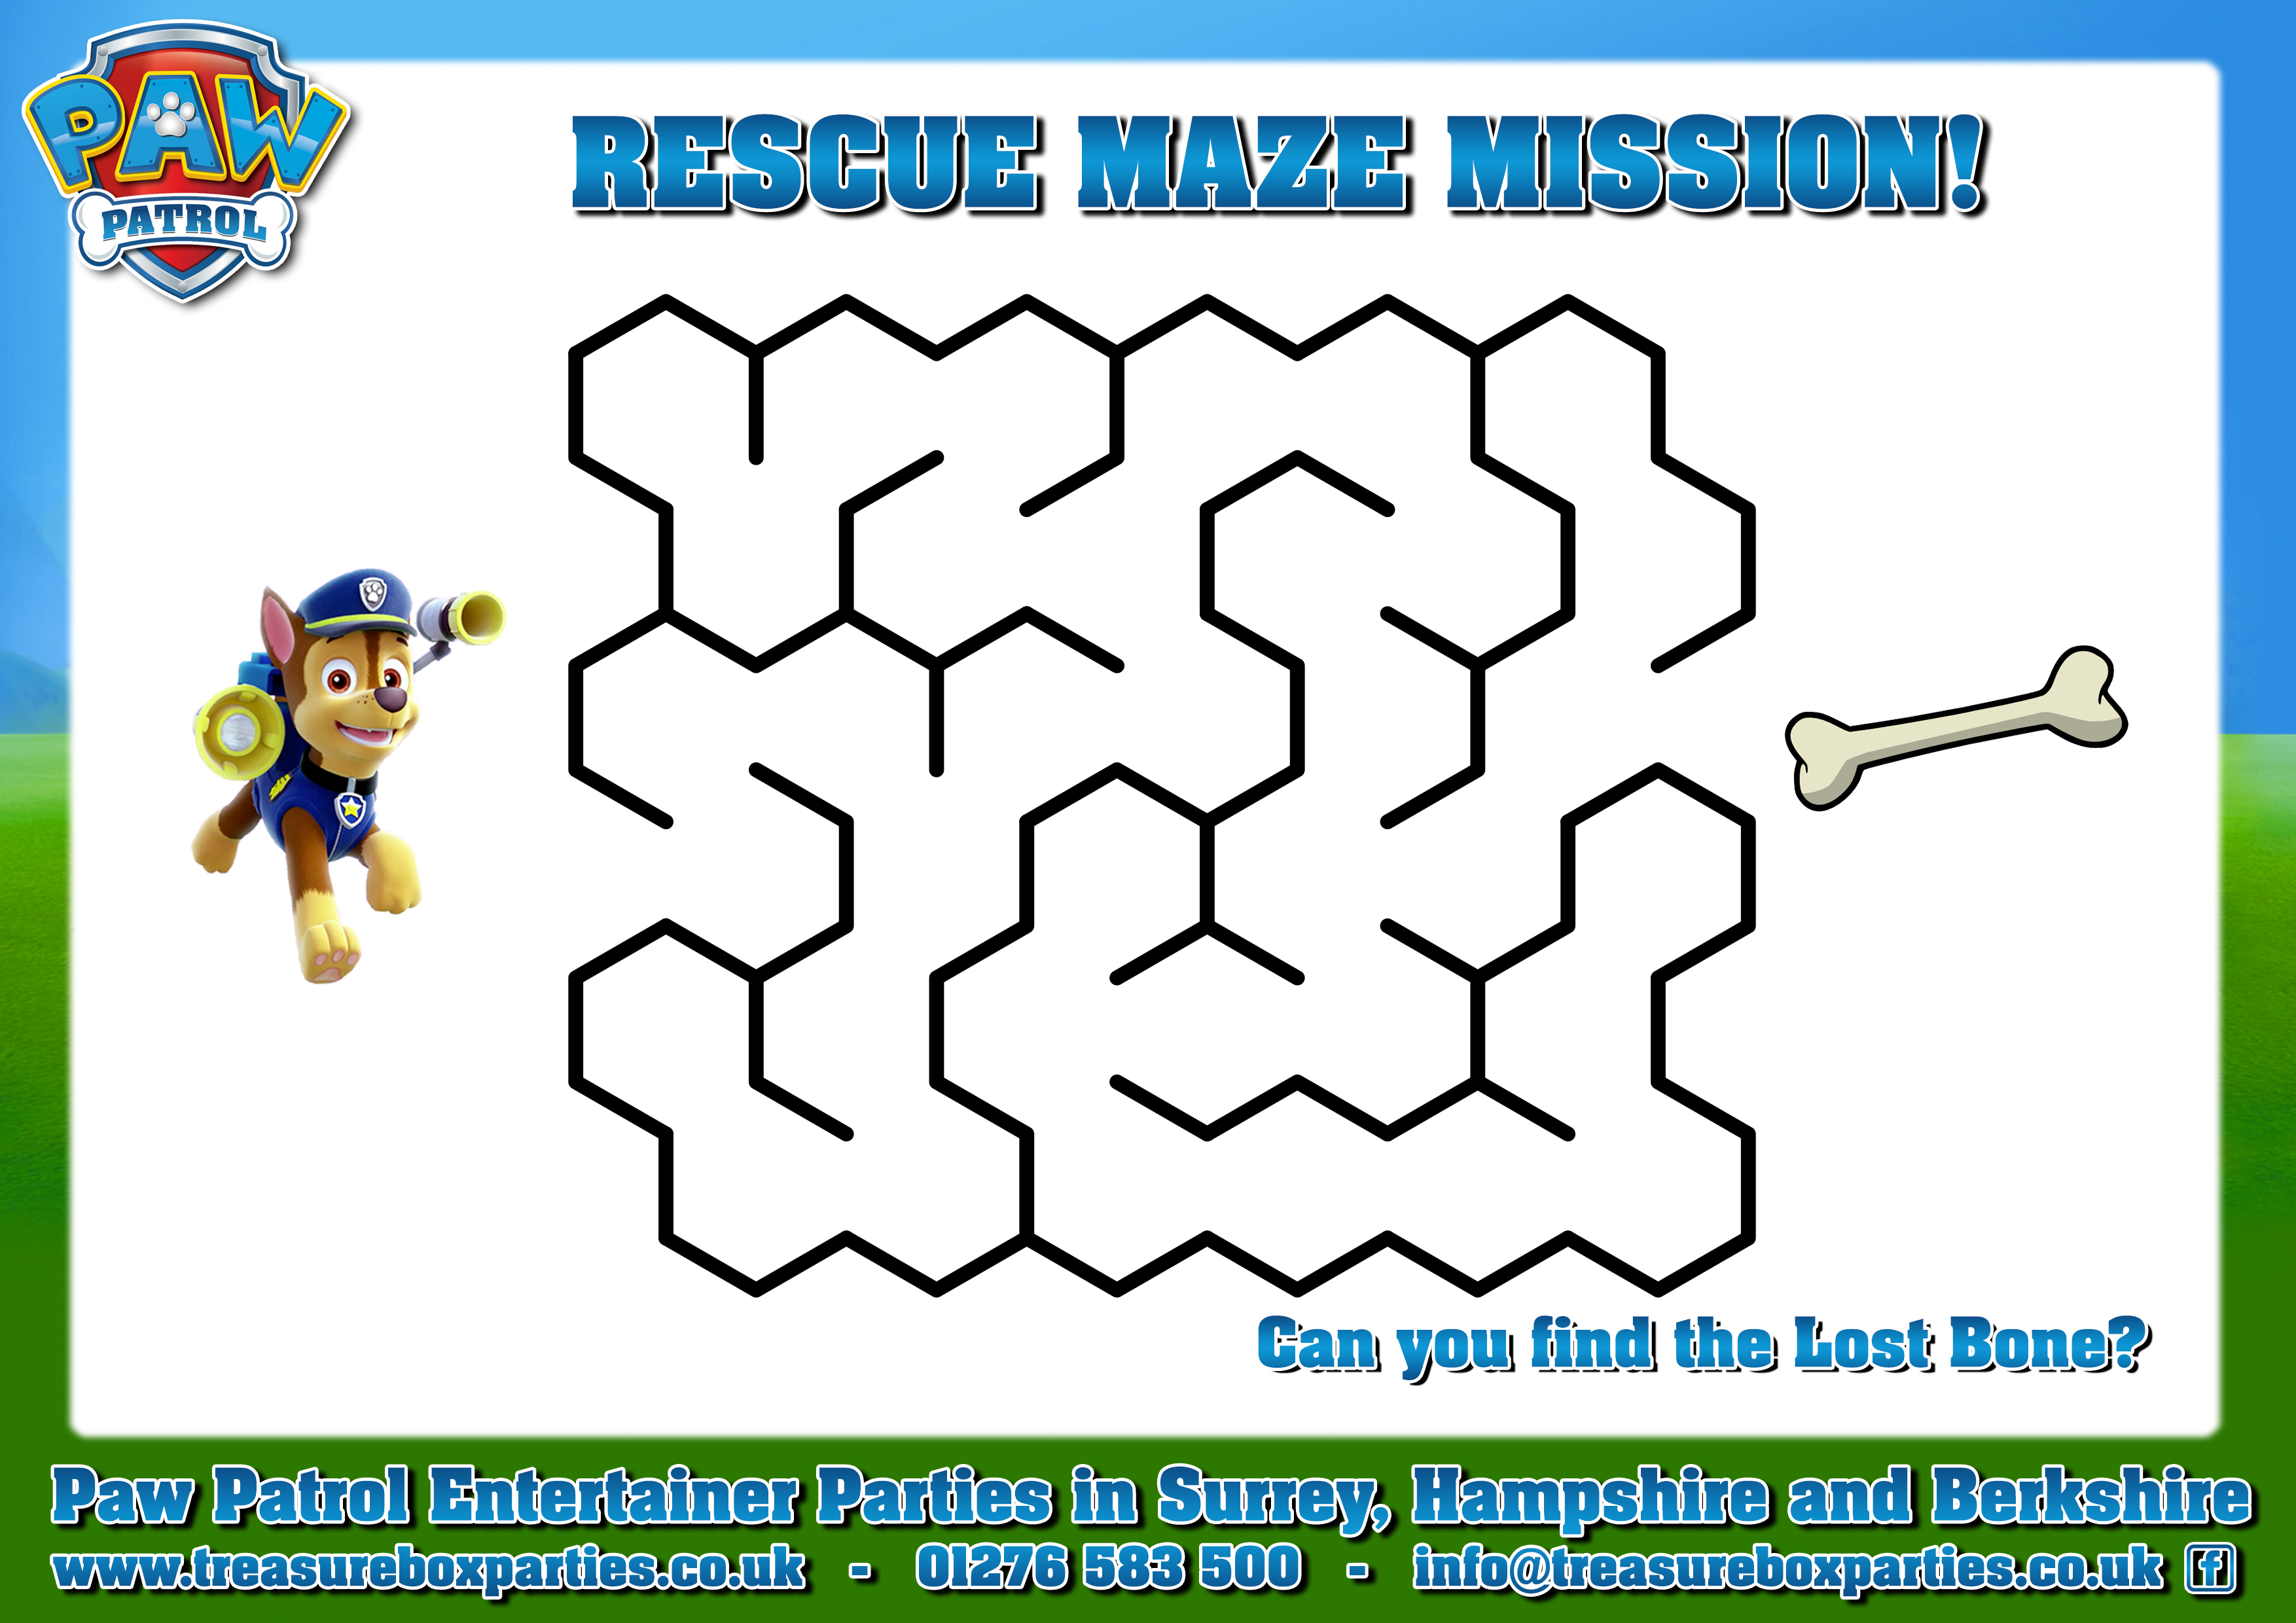 Paw Patrol Printable Maze Activity Sheet Childrens Entertainer Parties Surrey Berkshire Hampshire Treasure Box Parties Supplies Kids Party Games Ideas